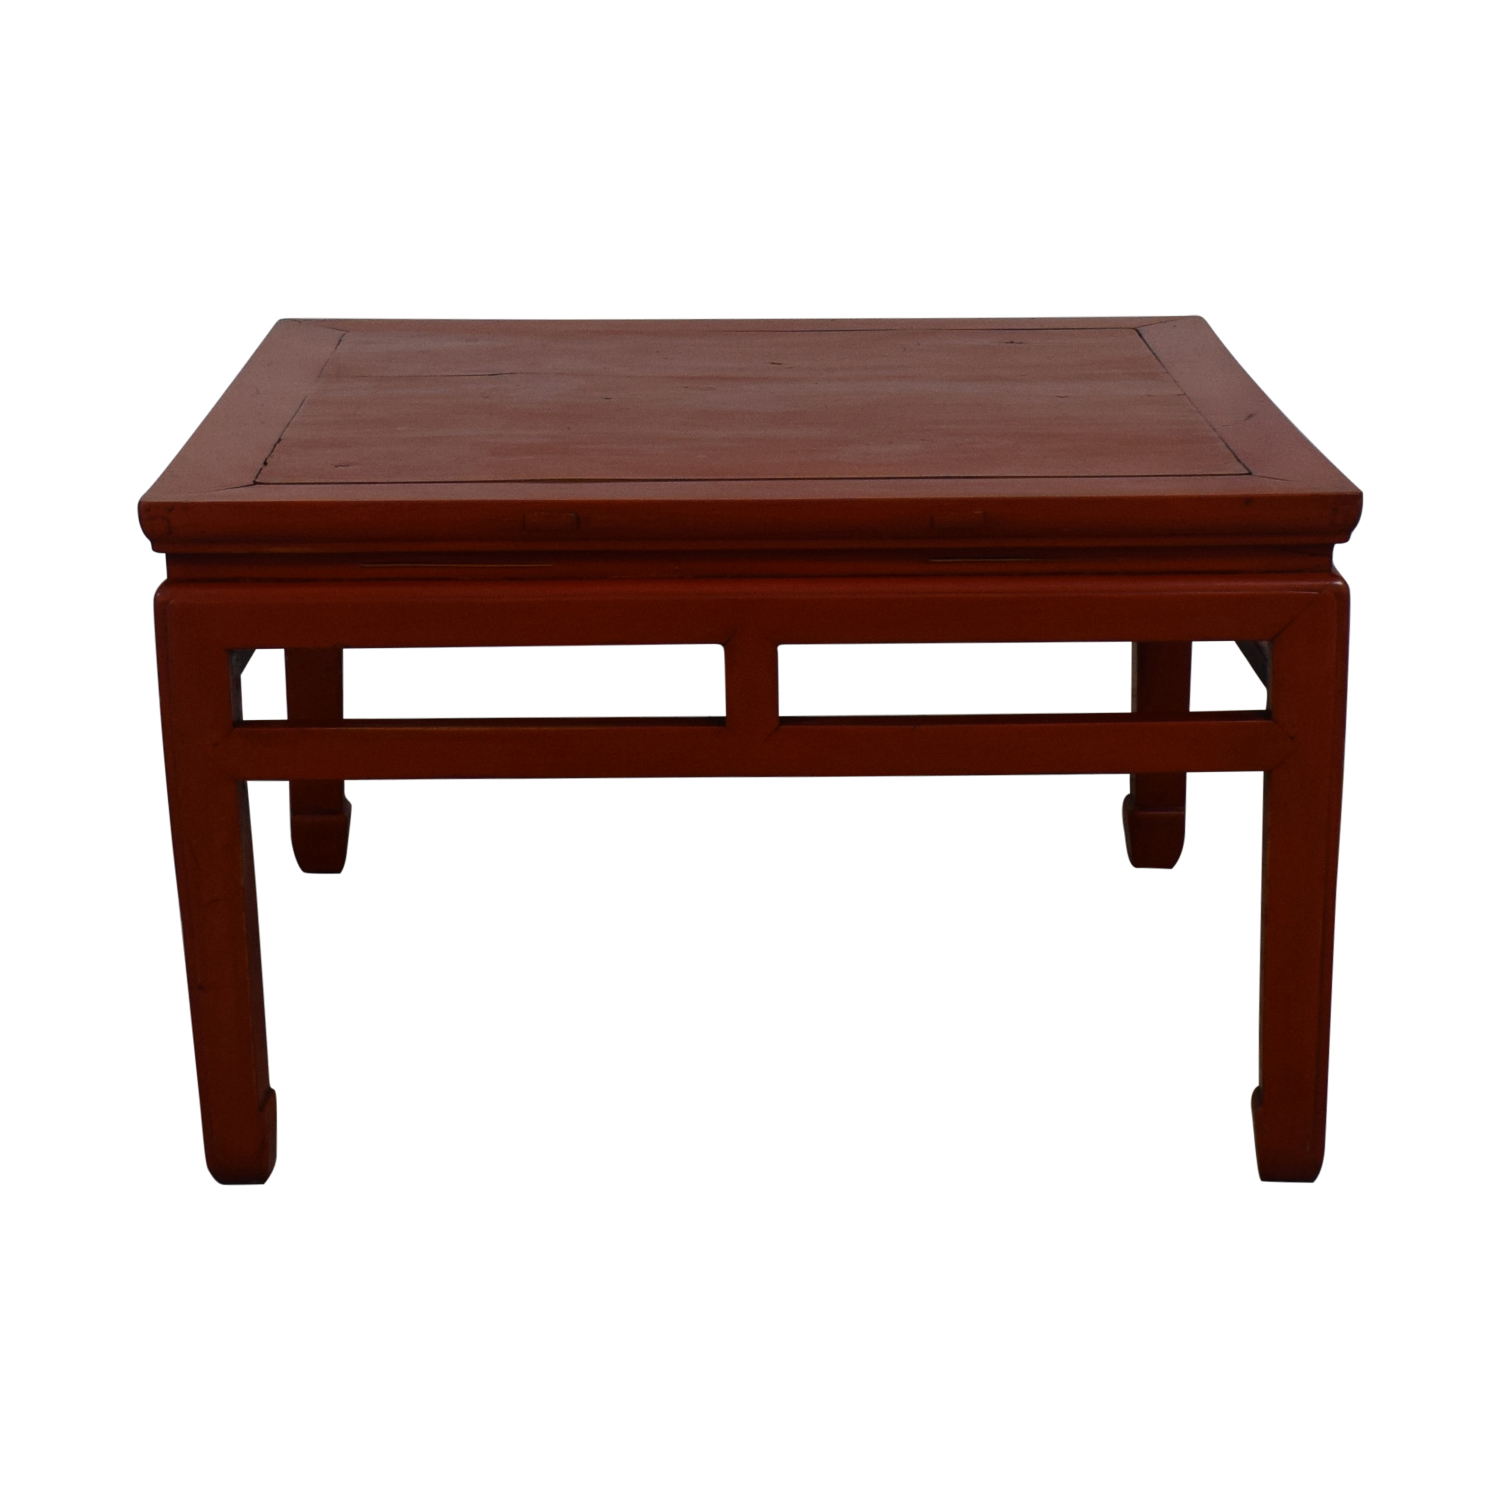 Rustic Red Coffee Table dimensions